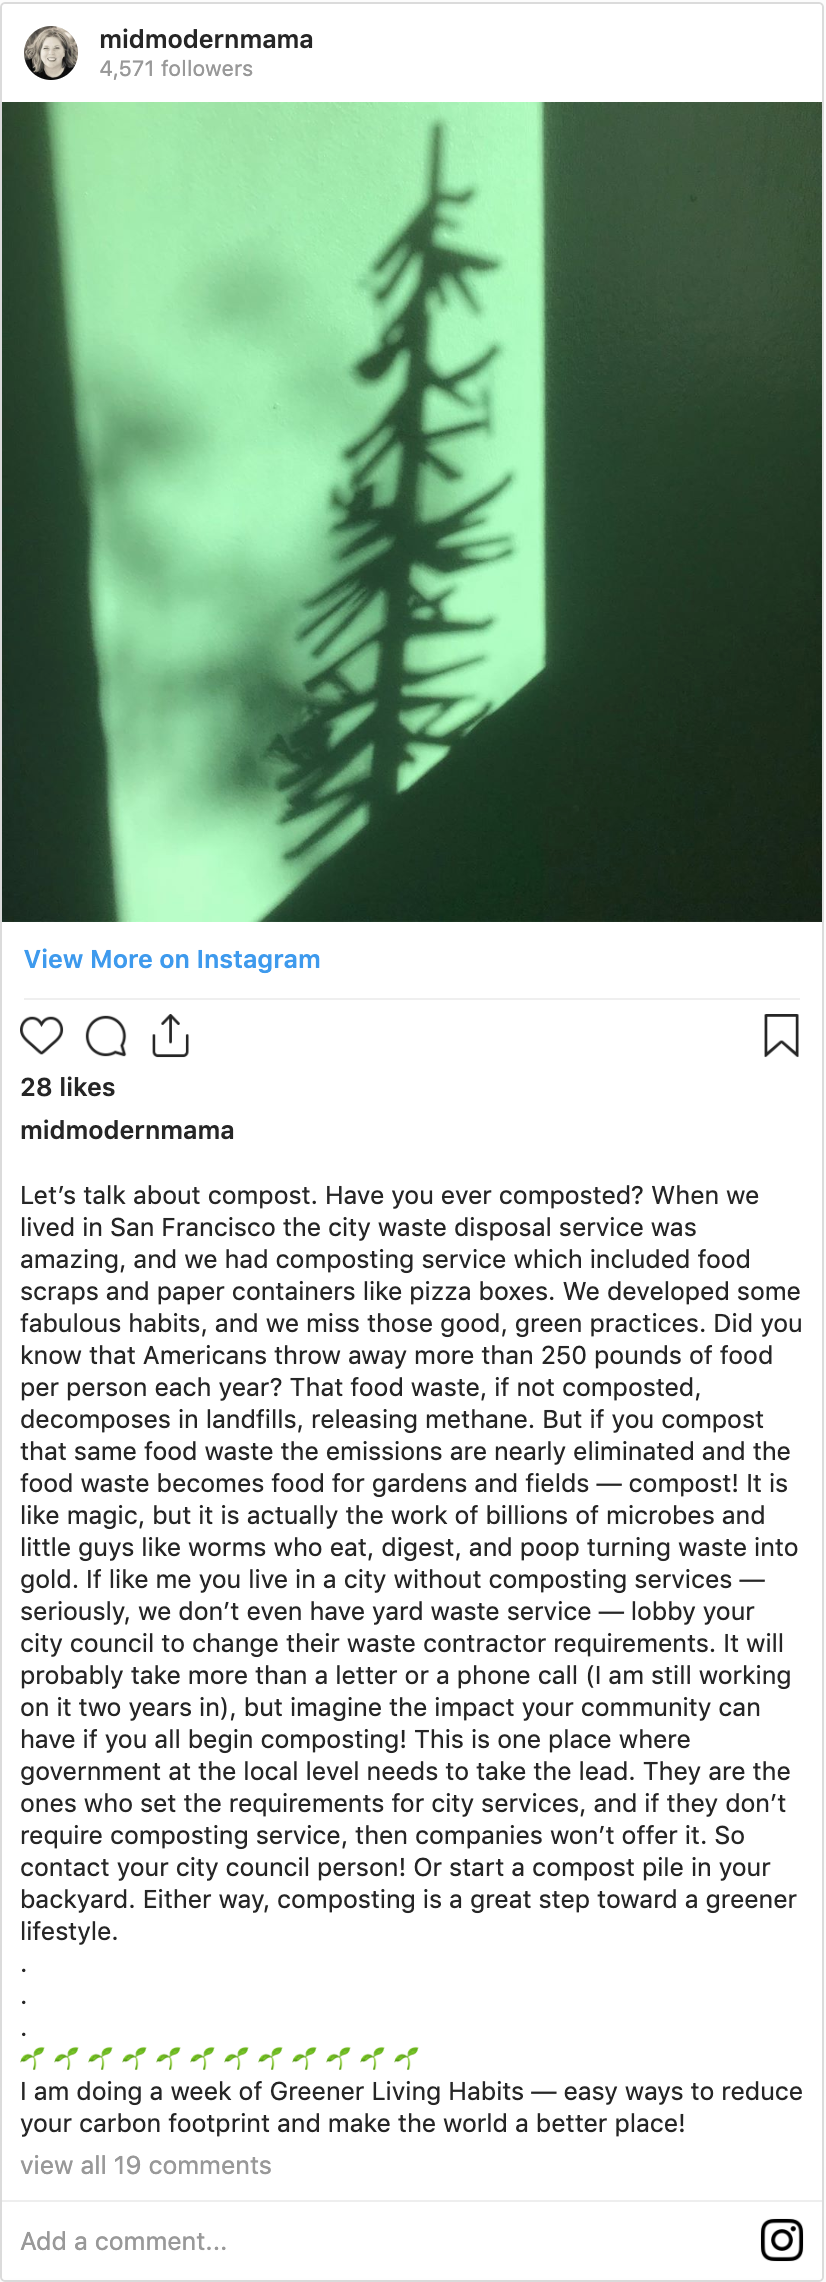 Let's talk about compost. Have you ever composted? When we lived in San Francisco the city waste disposal service was amazing, and we had composting service which included food scraps and paper containers like pizza boxes. We developed some fabulous habits, and we miss those good, green practices. Did you know that Americans throw away more than 250 pounds of food per person each year? That food waste, if not composted, decomposes in landfills, releasing methane. But if you compost that same food waste the emissions are nearly eliminated and the food waste becomes food for gardens and fields — compost! It is like magic, but it is actually the work of billions of microbes and little guys like worms who eat, digest, and poop turning waste into gold. If like me you live in a city without composting services — seriously, we don't even have yard waste service — lobby your city council to change their waste contractor requirements. It will probably take more than a letter or a phone call (I am still working on it two years in), but imagine the impact your community can have if you all begin composting! This is one place where government at the local level needs to take the lead. They are the ones who set the requirements for city services, and if they don't require composting service, then companies won't offer it. So contact your city council person! Or start a compost pile in your backyard. Either way, composting is a great step toward a greener lifestyle.